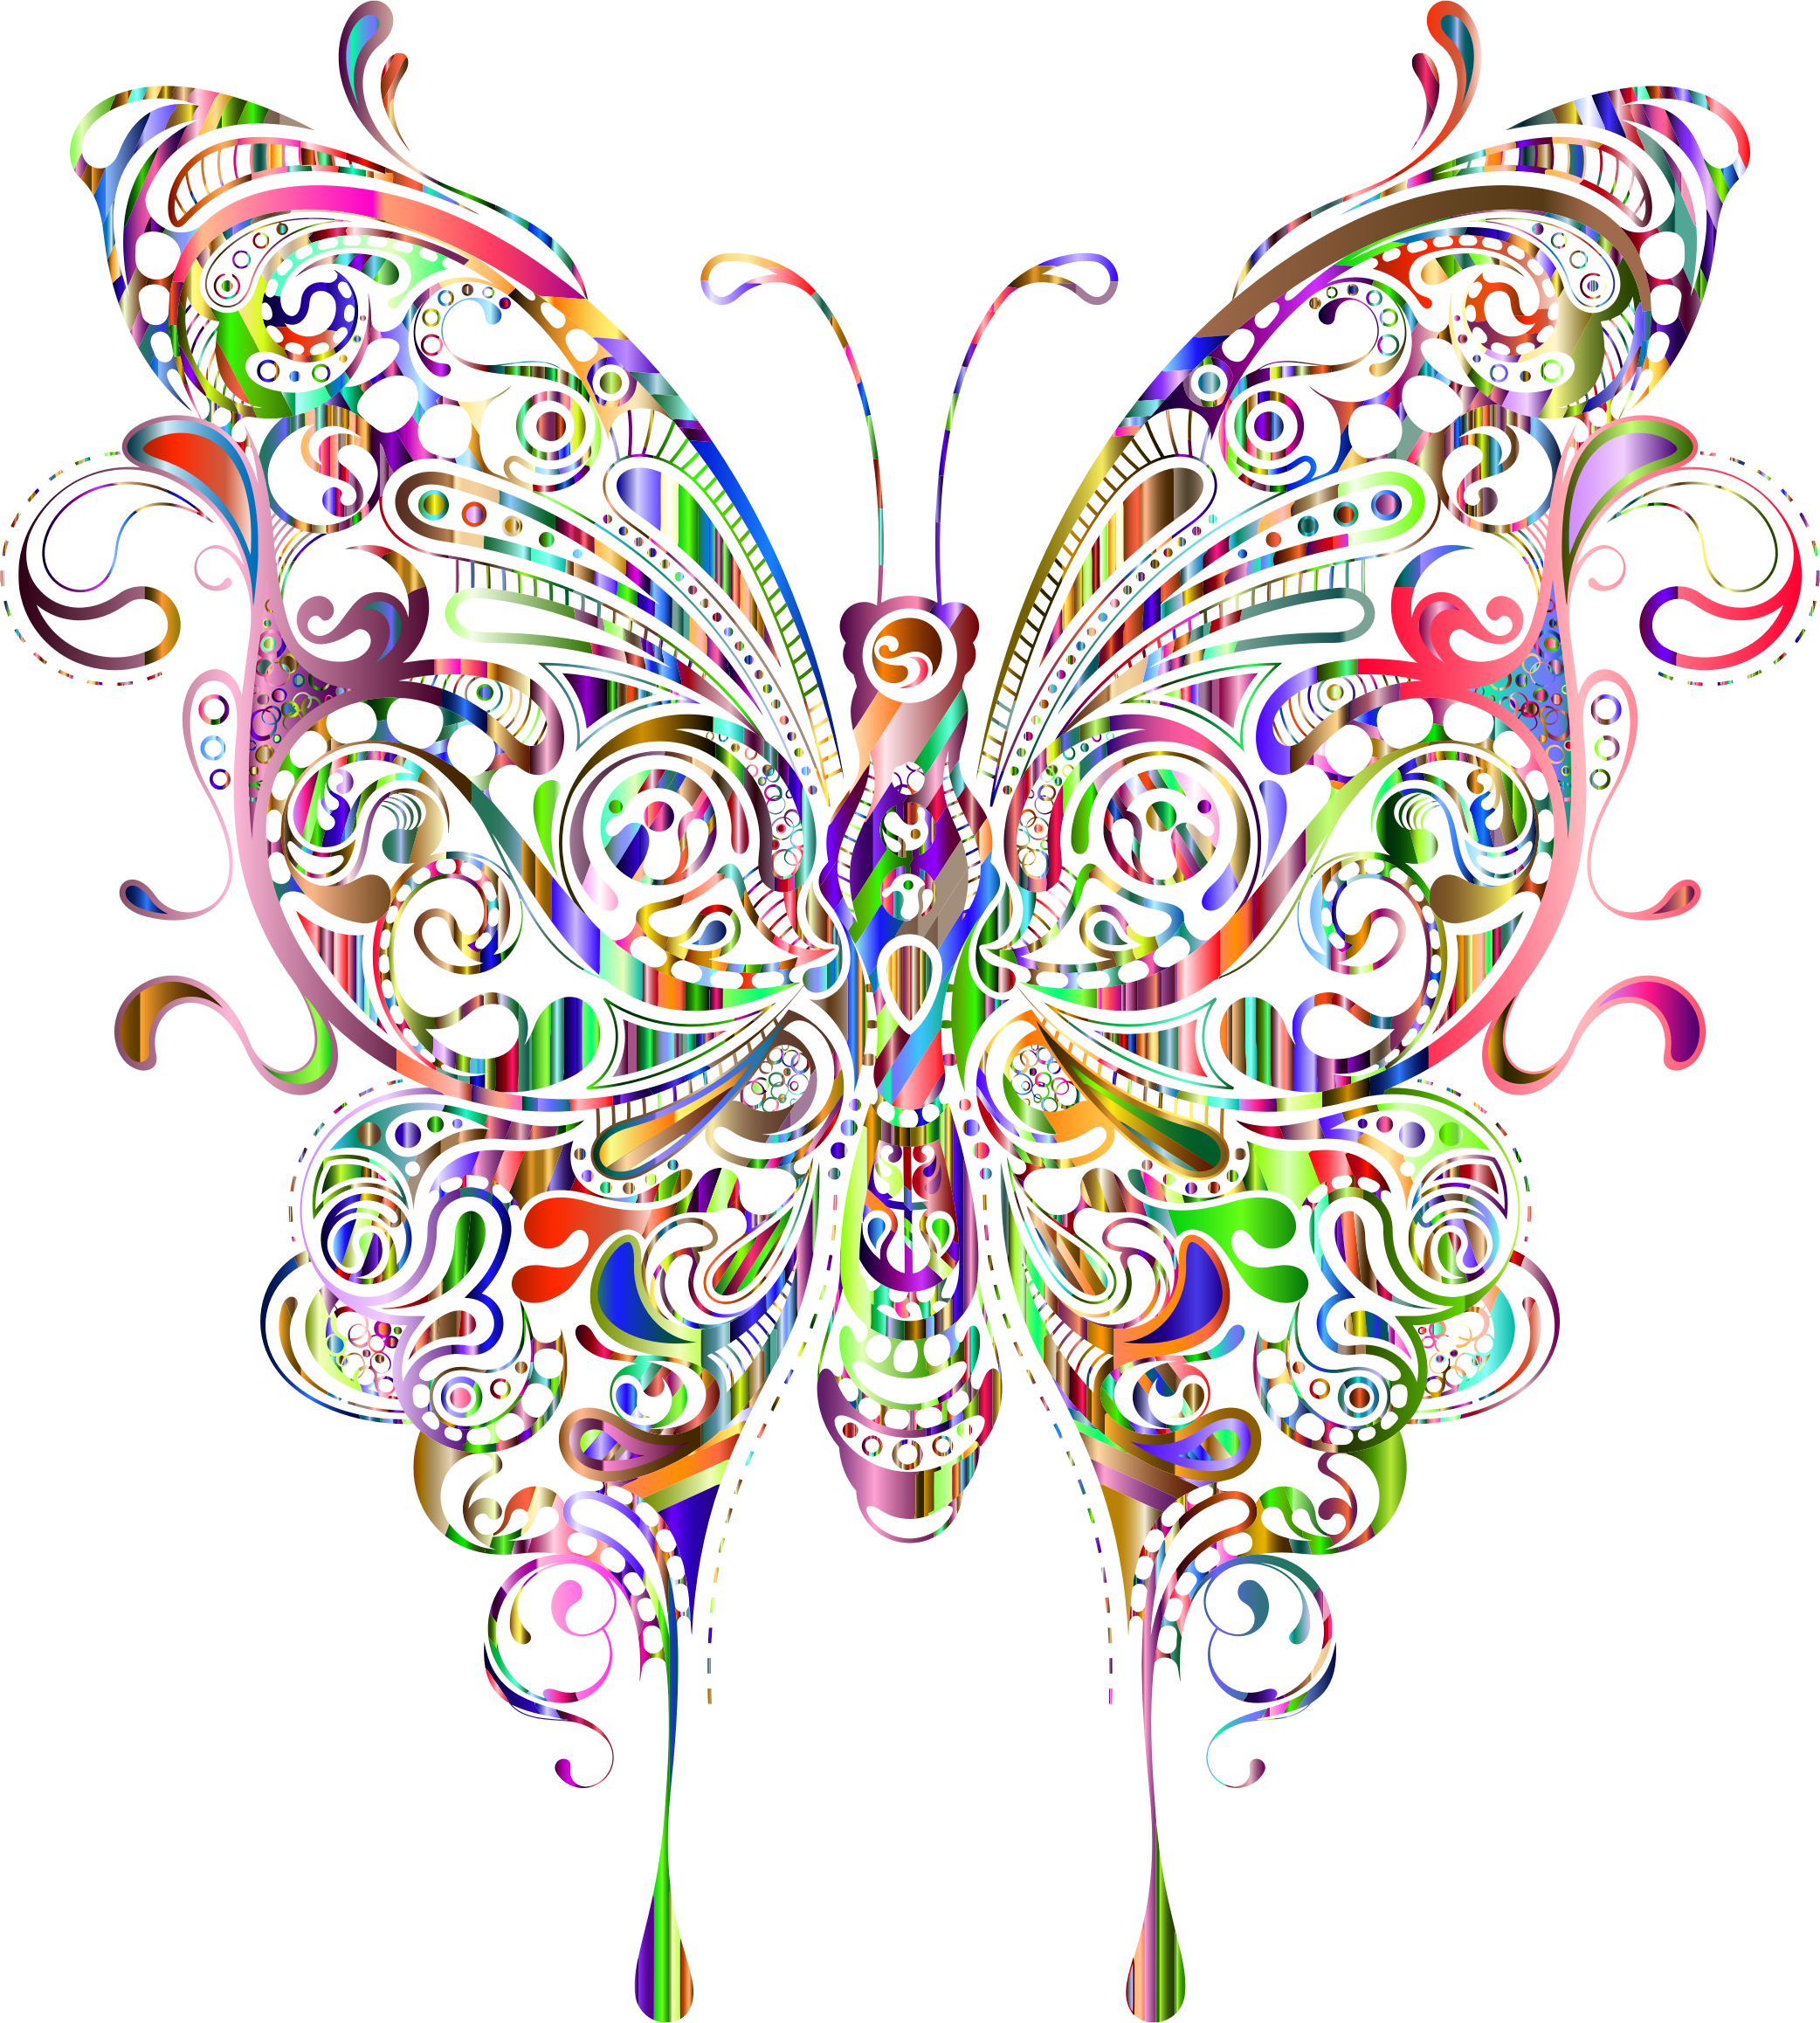 Abstract Butterfly II Prismatic 2 by GDJ